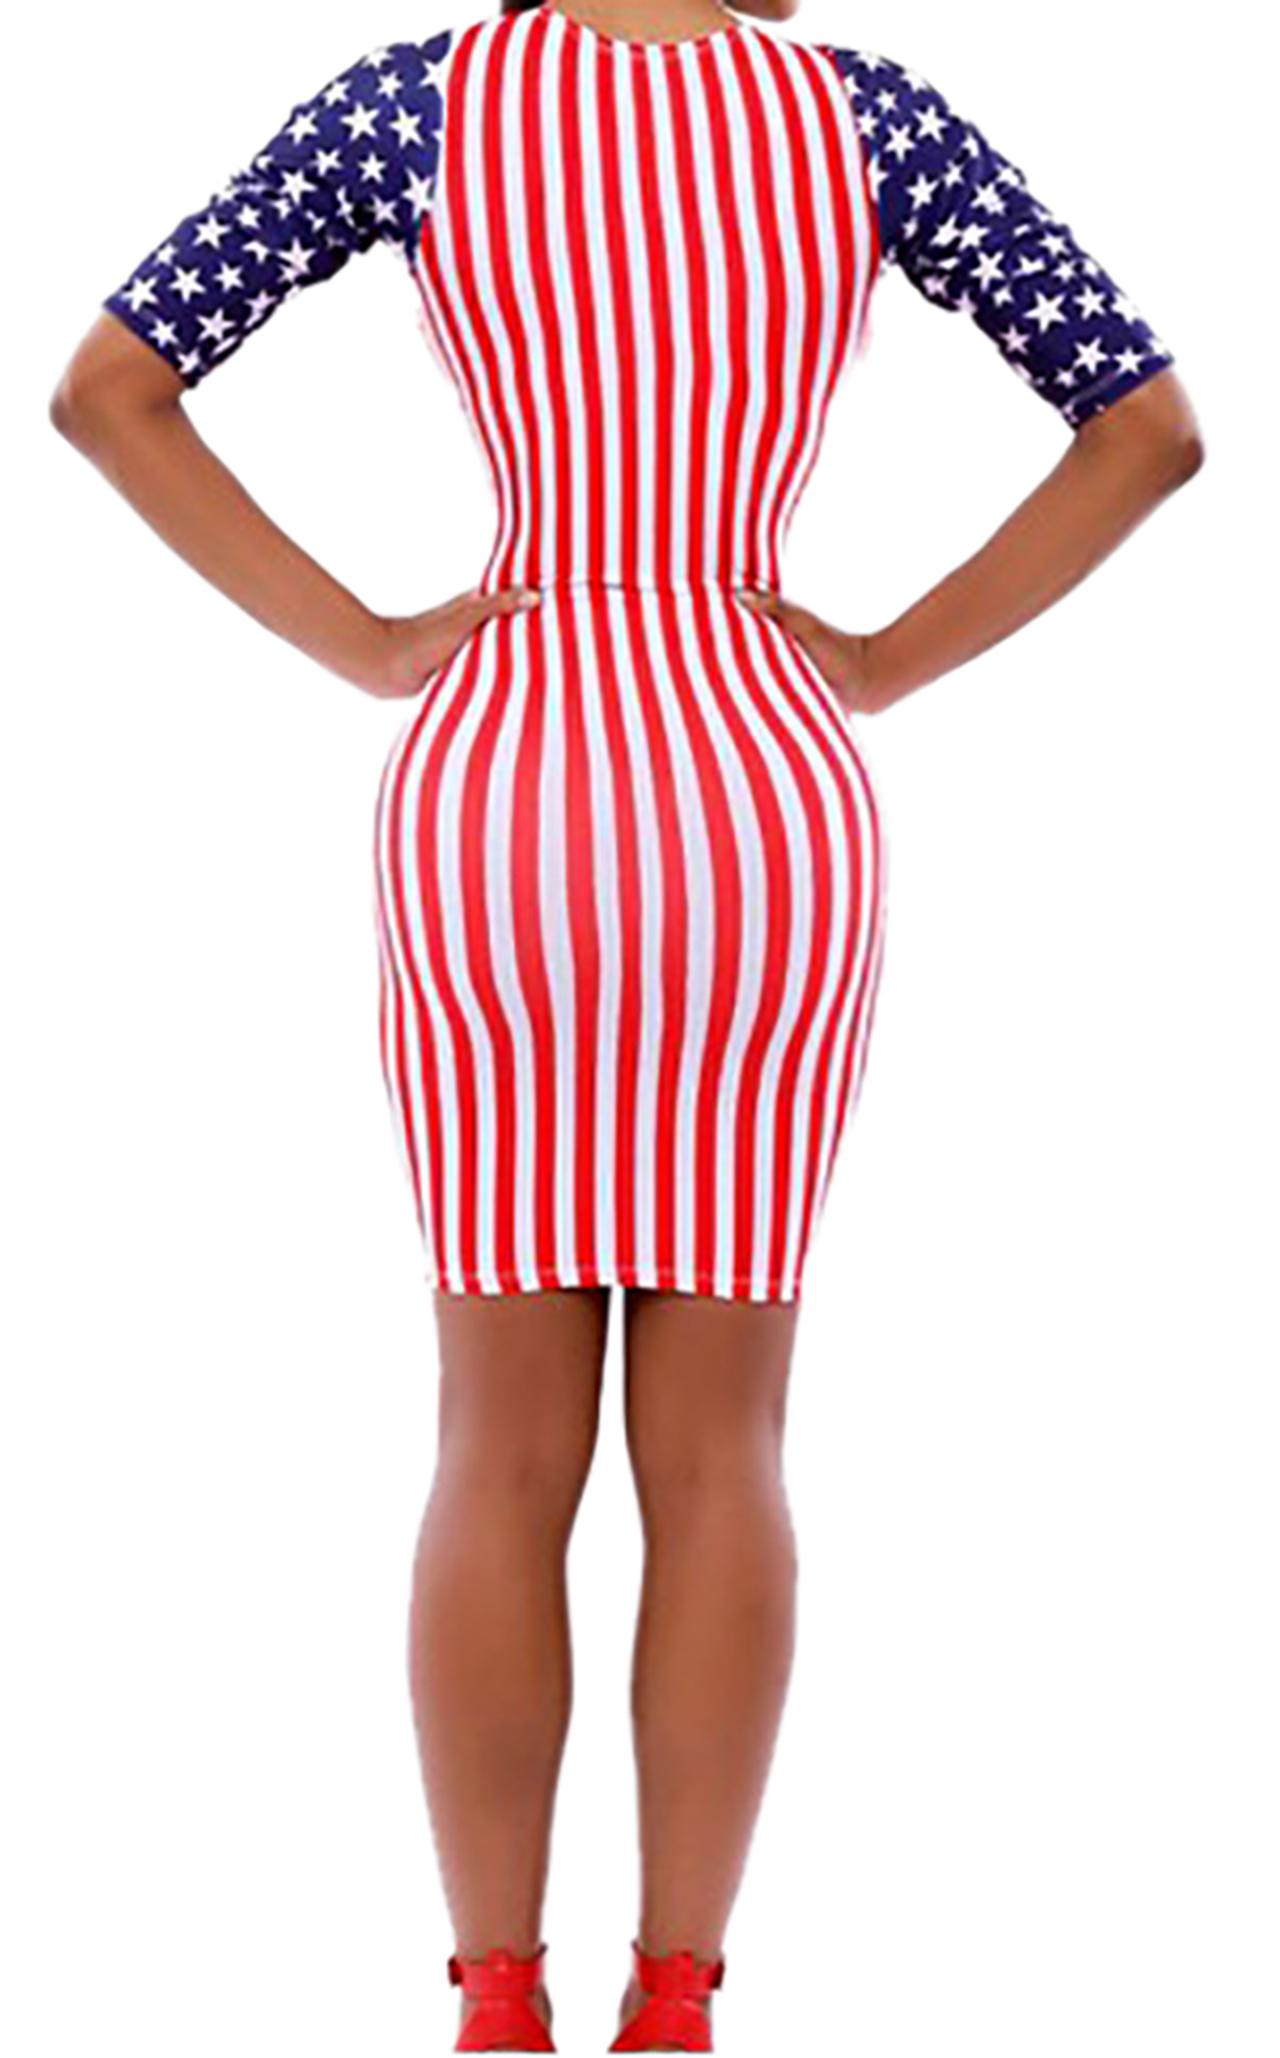 Waooh - Dress American flag motif Huon